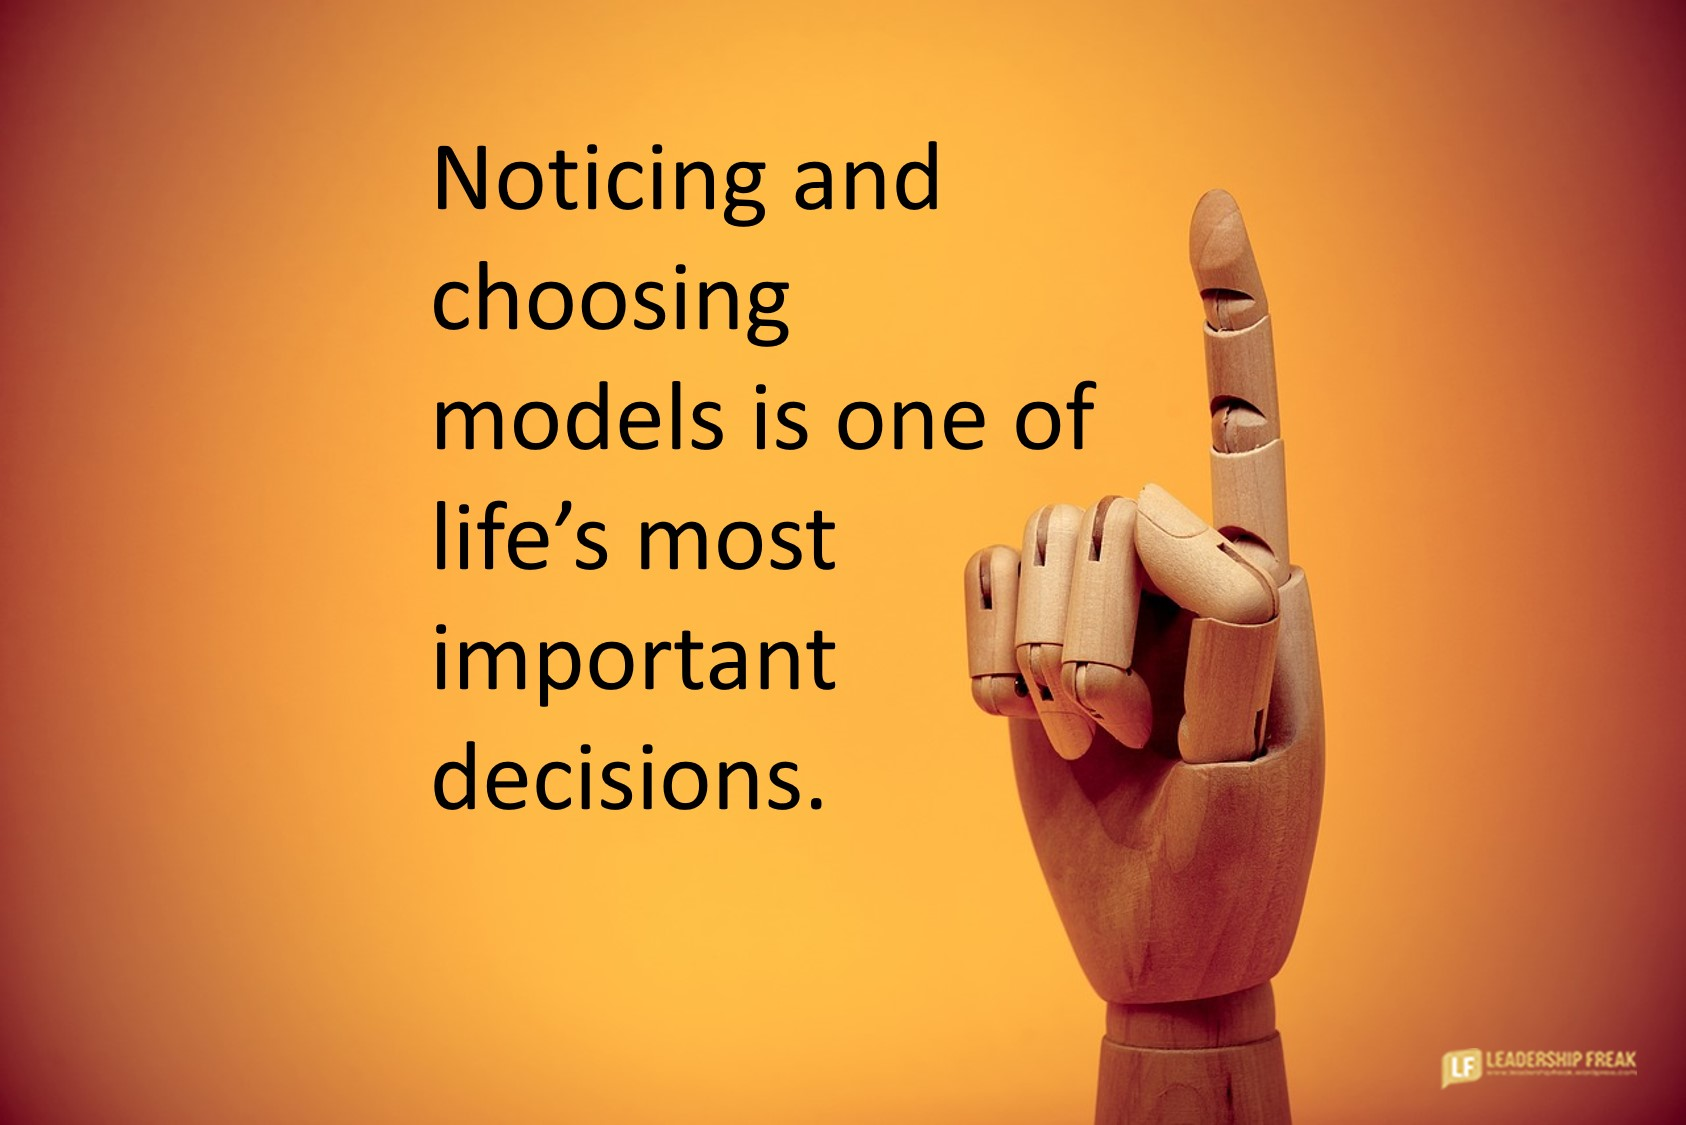 wooden model.  Noticing and choosing models is one of the life's most important decisions.